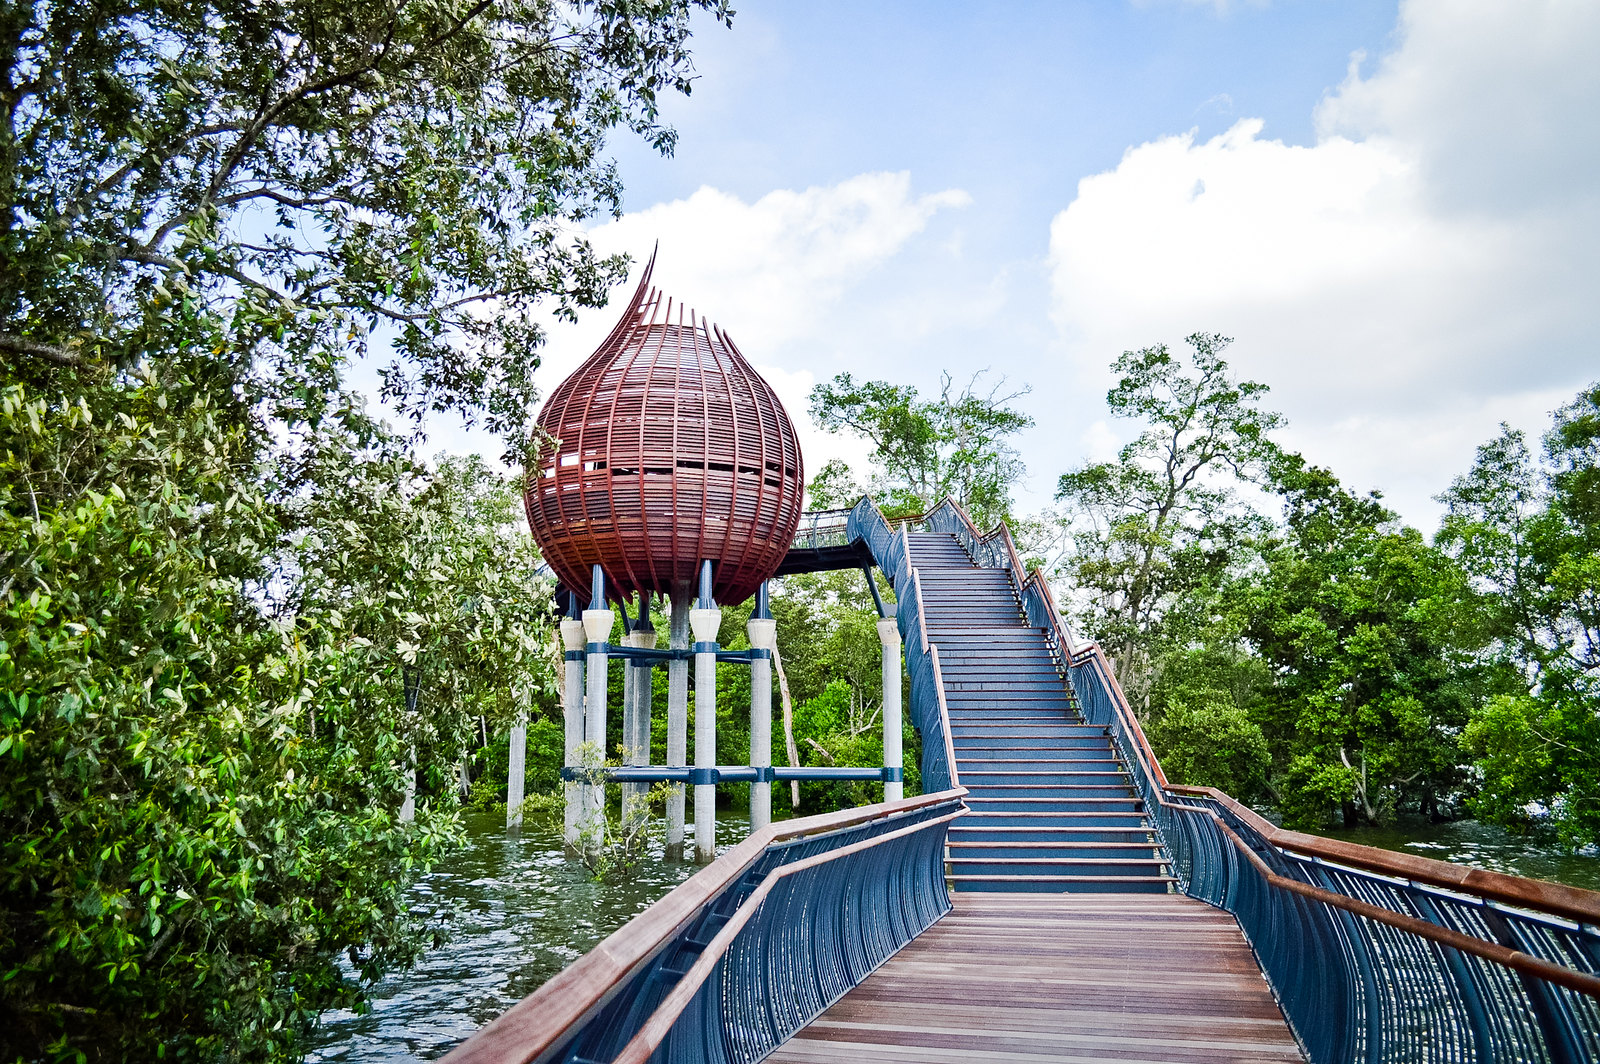 Take a Walk on the Wild Side: Sungei Buloh Wetland Reserve